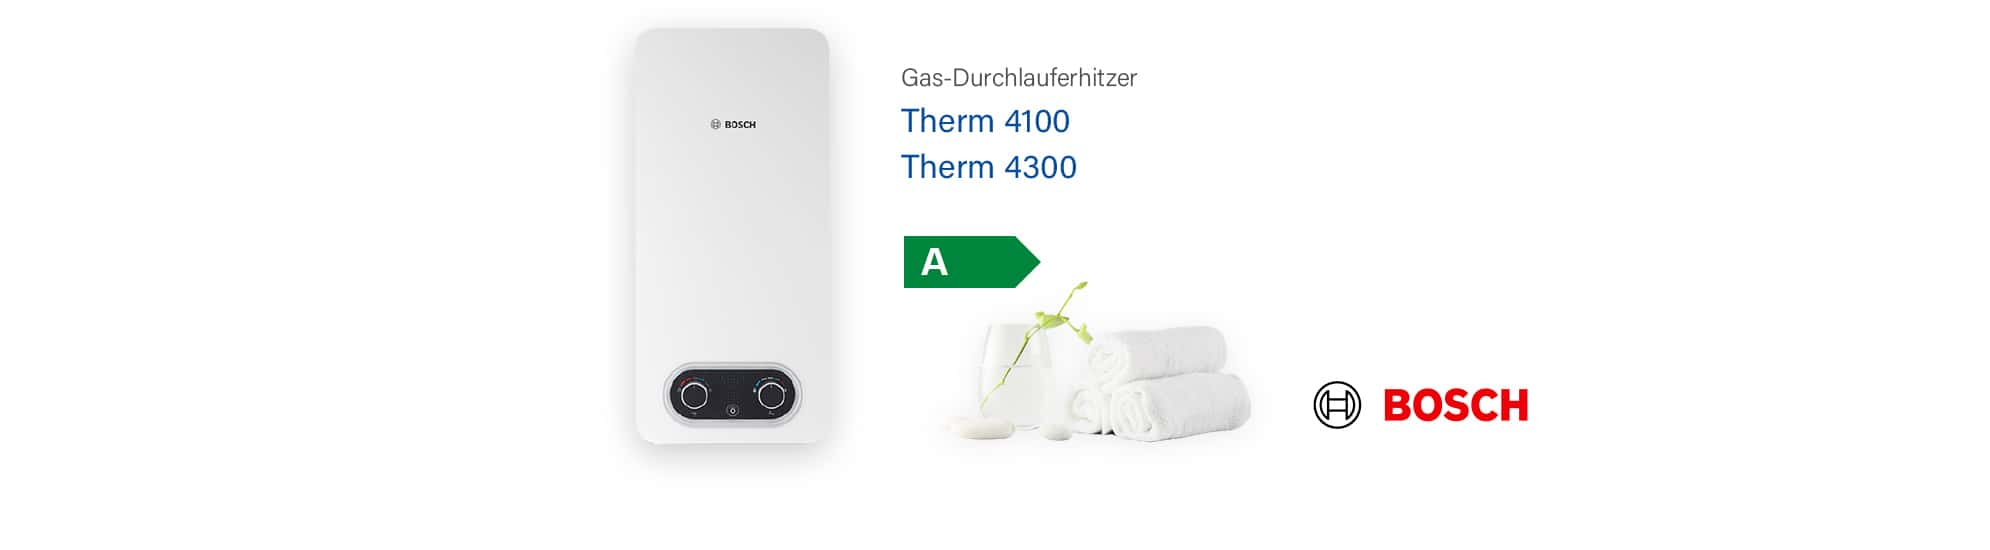 Junkers/Bosch Therm 4200 & 4300 Durchlauferhitzer